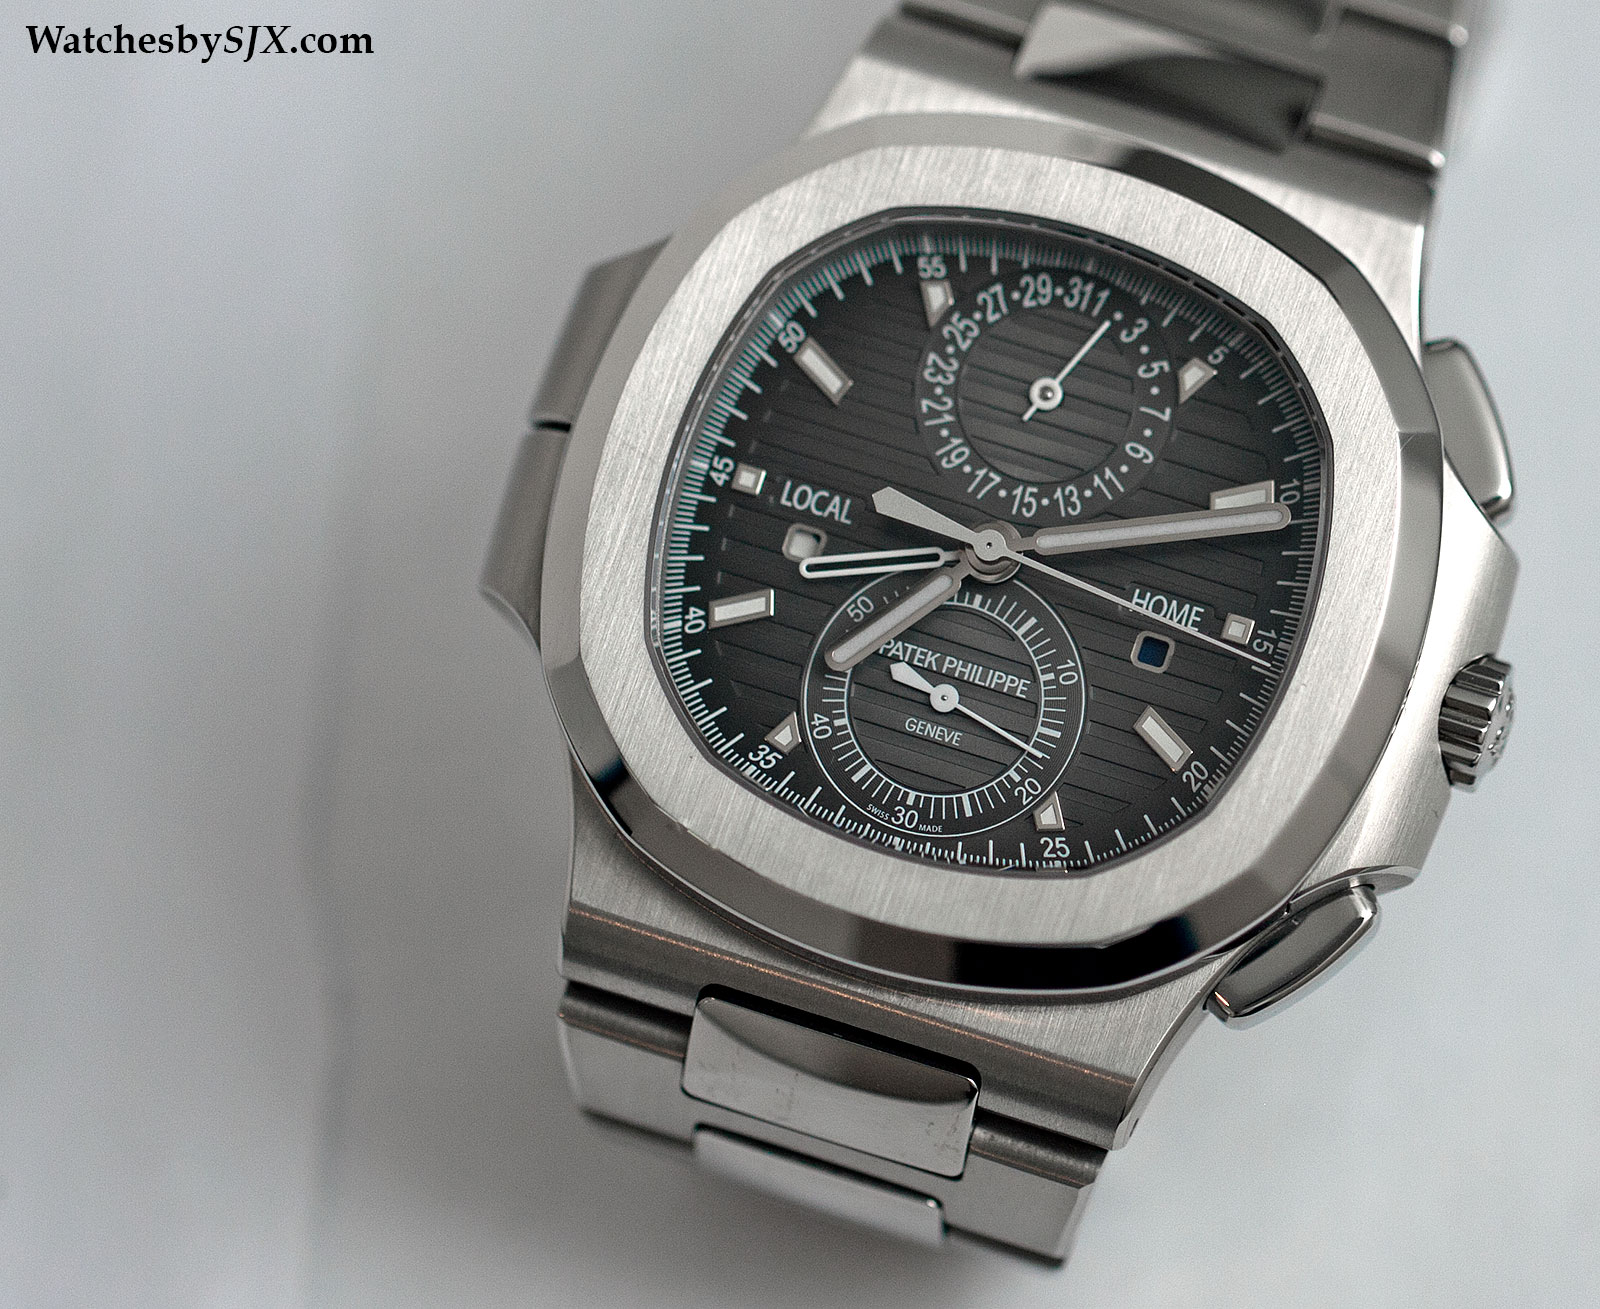 3cbd98c6171b3 Hands-On With The Patek Philippe Nautilus Travel Time Ref. 5990/1A (With  Live Photos, Review And Price)